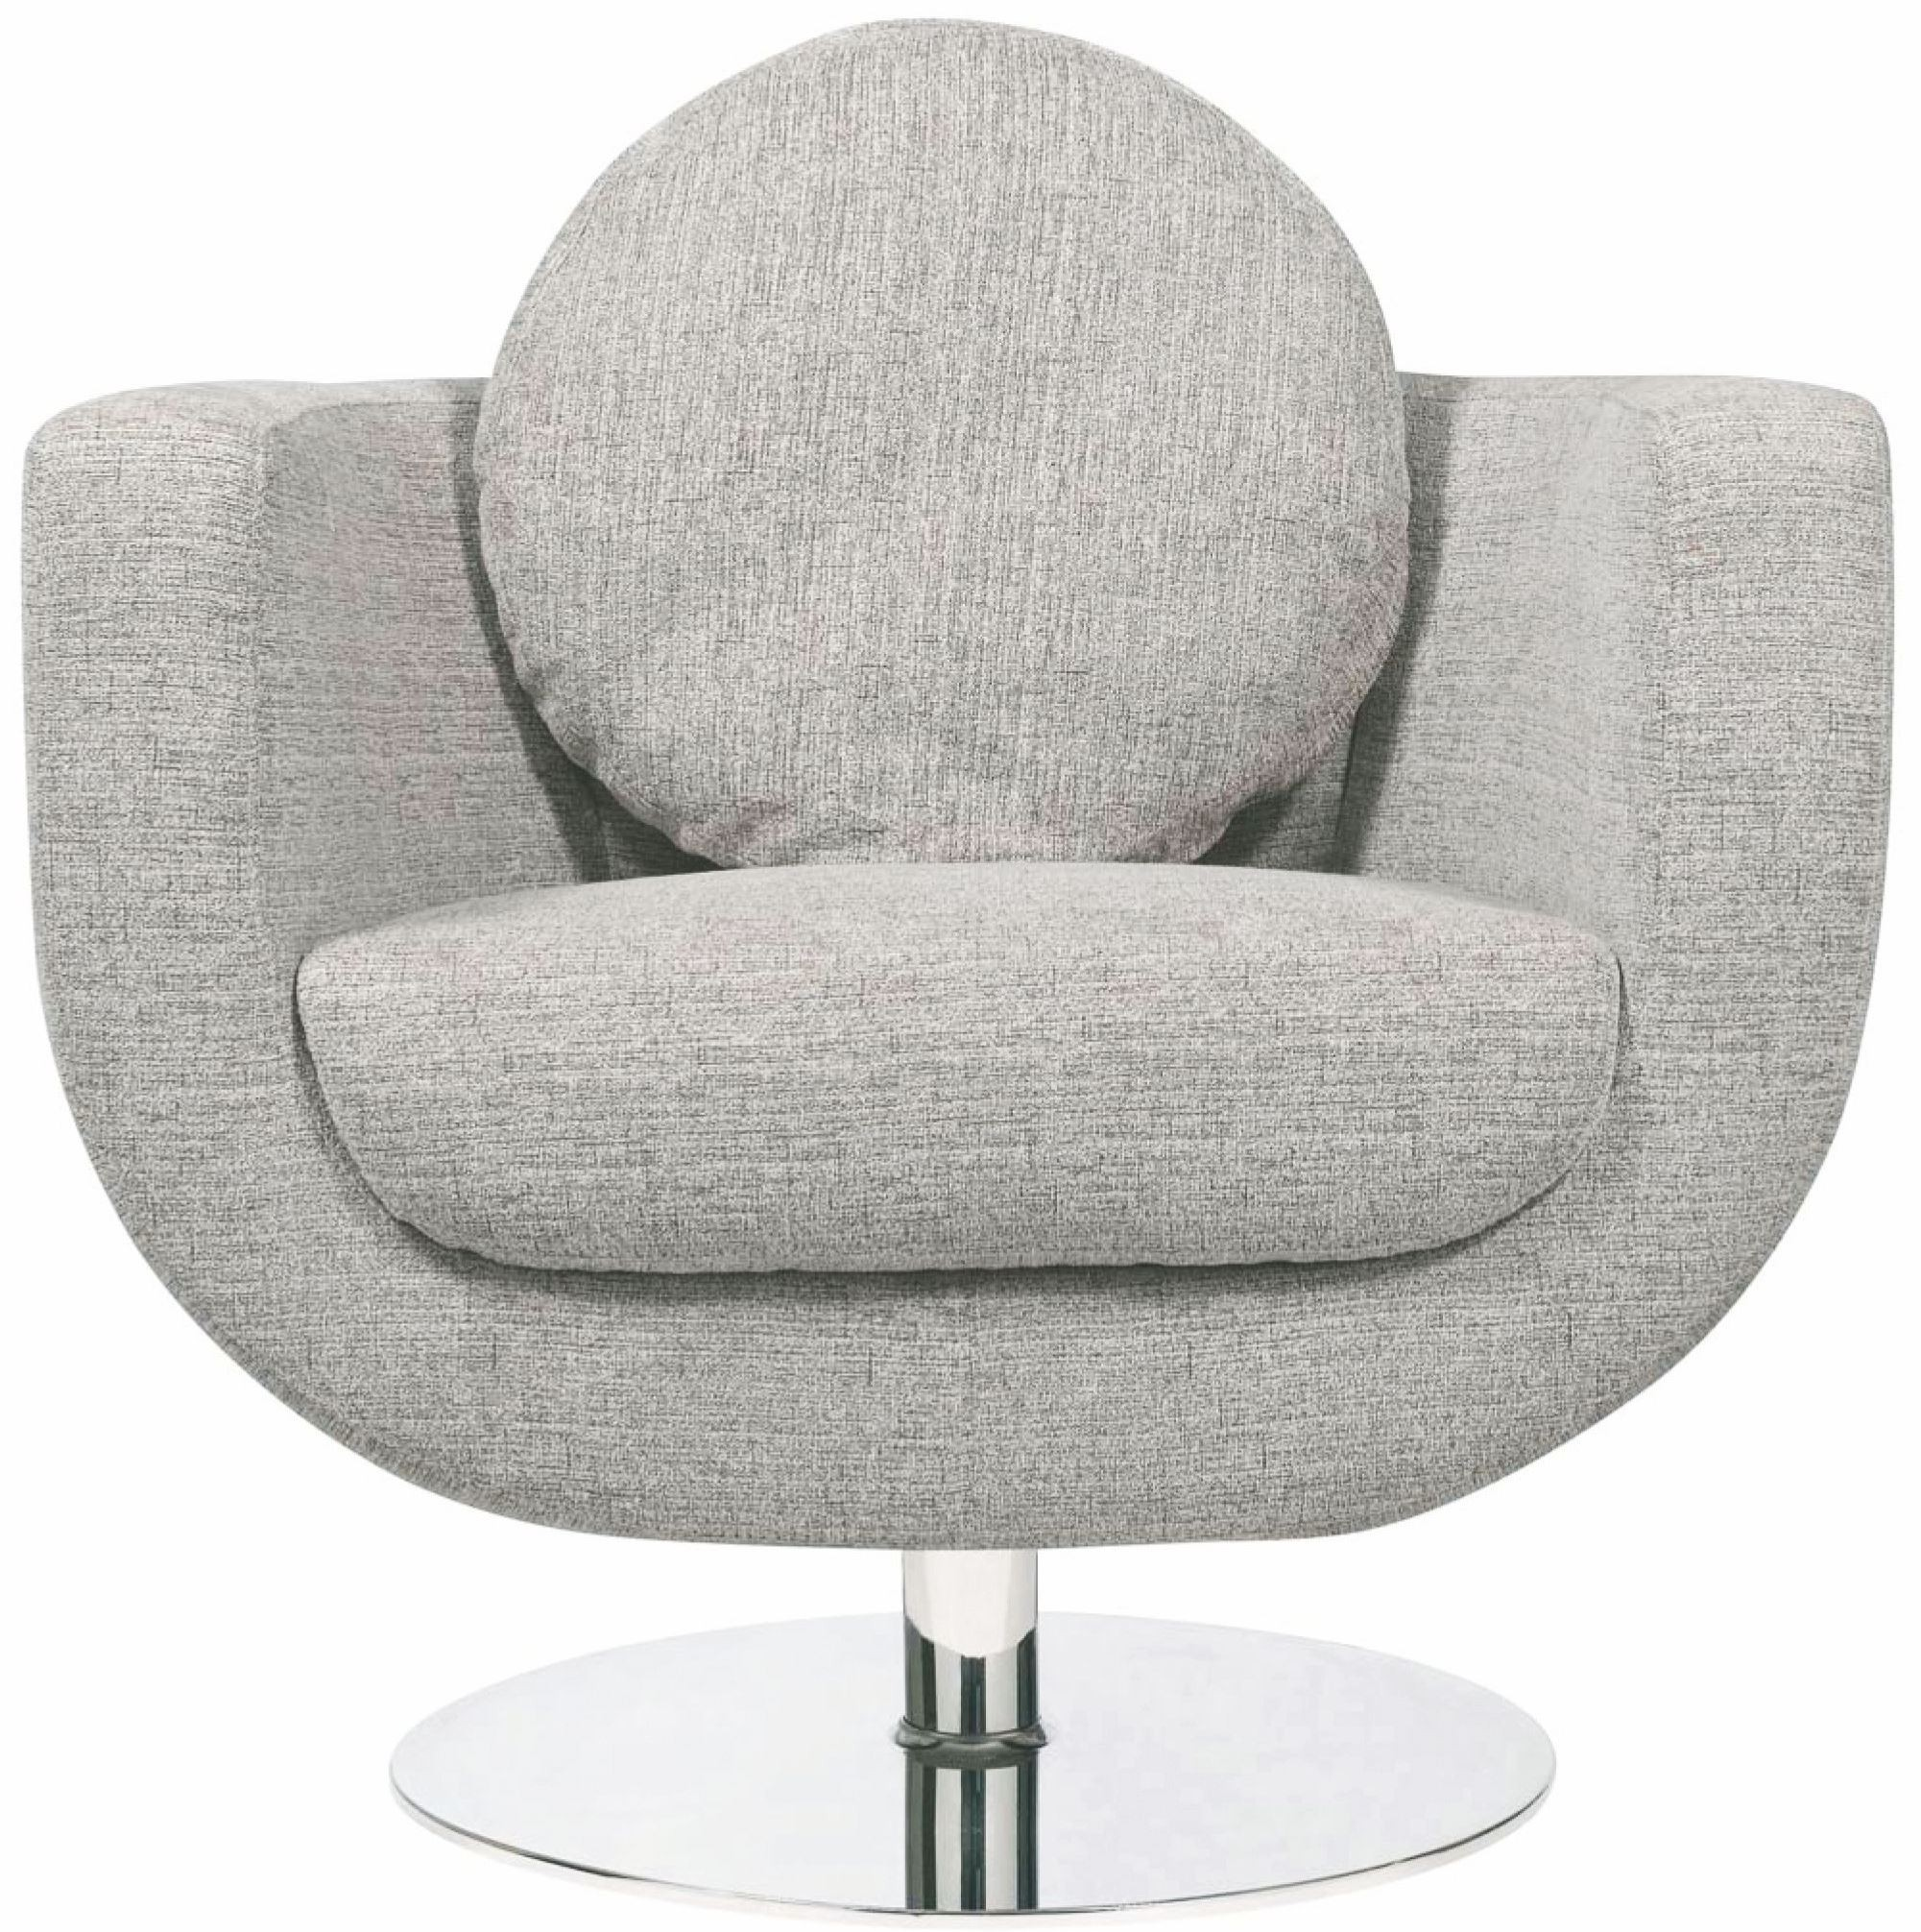 Simone Grey Fabric Lounger Chair From Nuevo Coleman